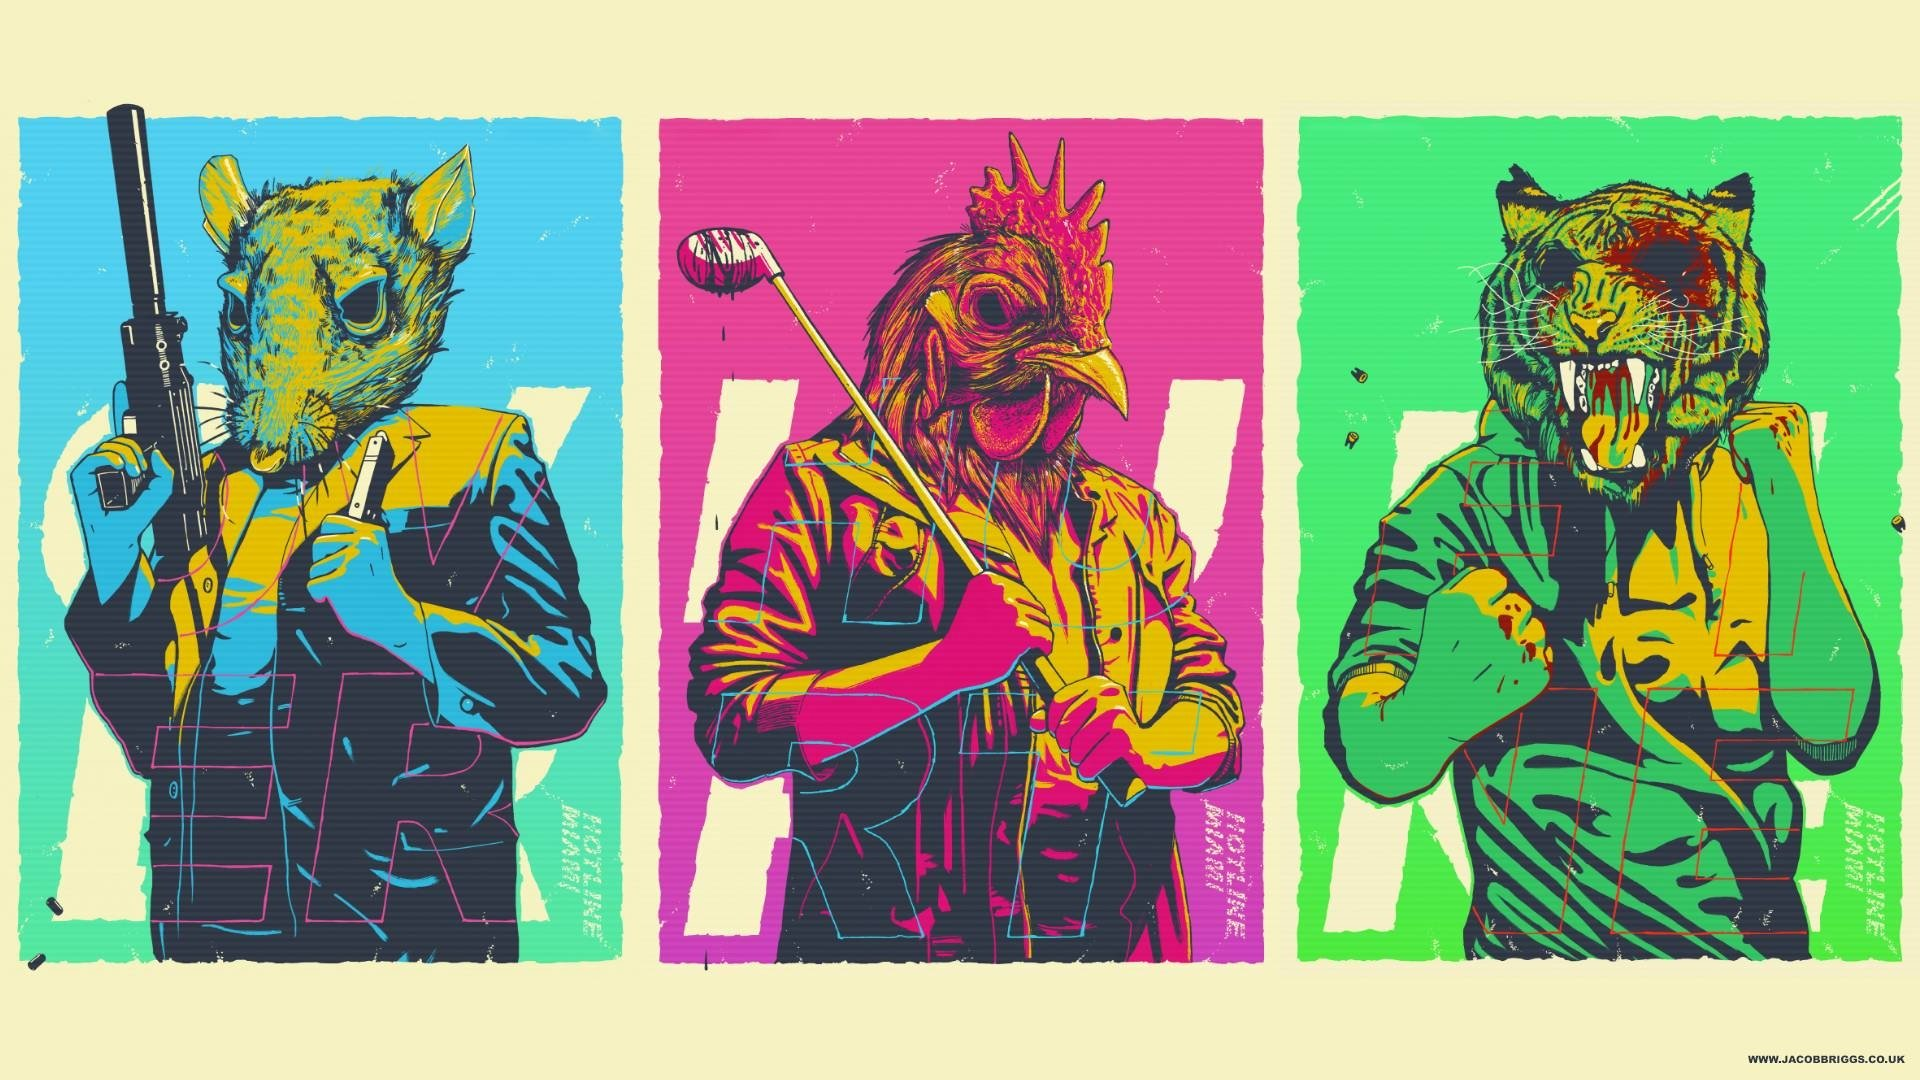 41 Hotline Miami Hd Wallpapers Background Images